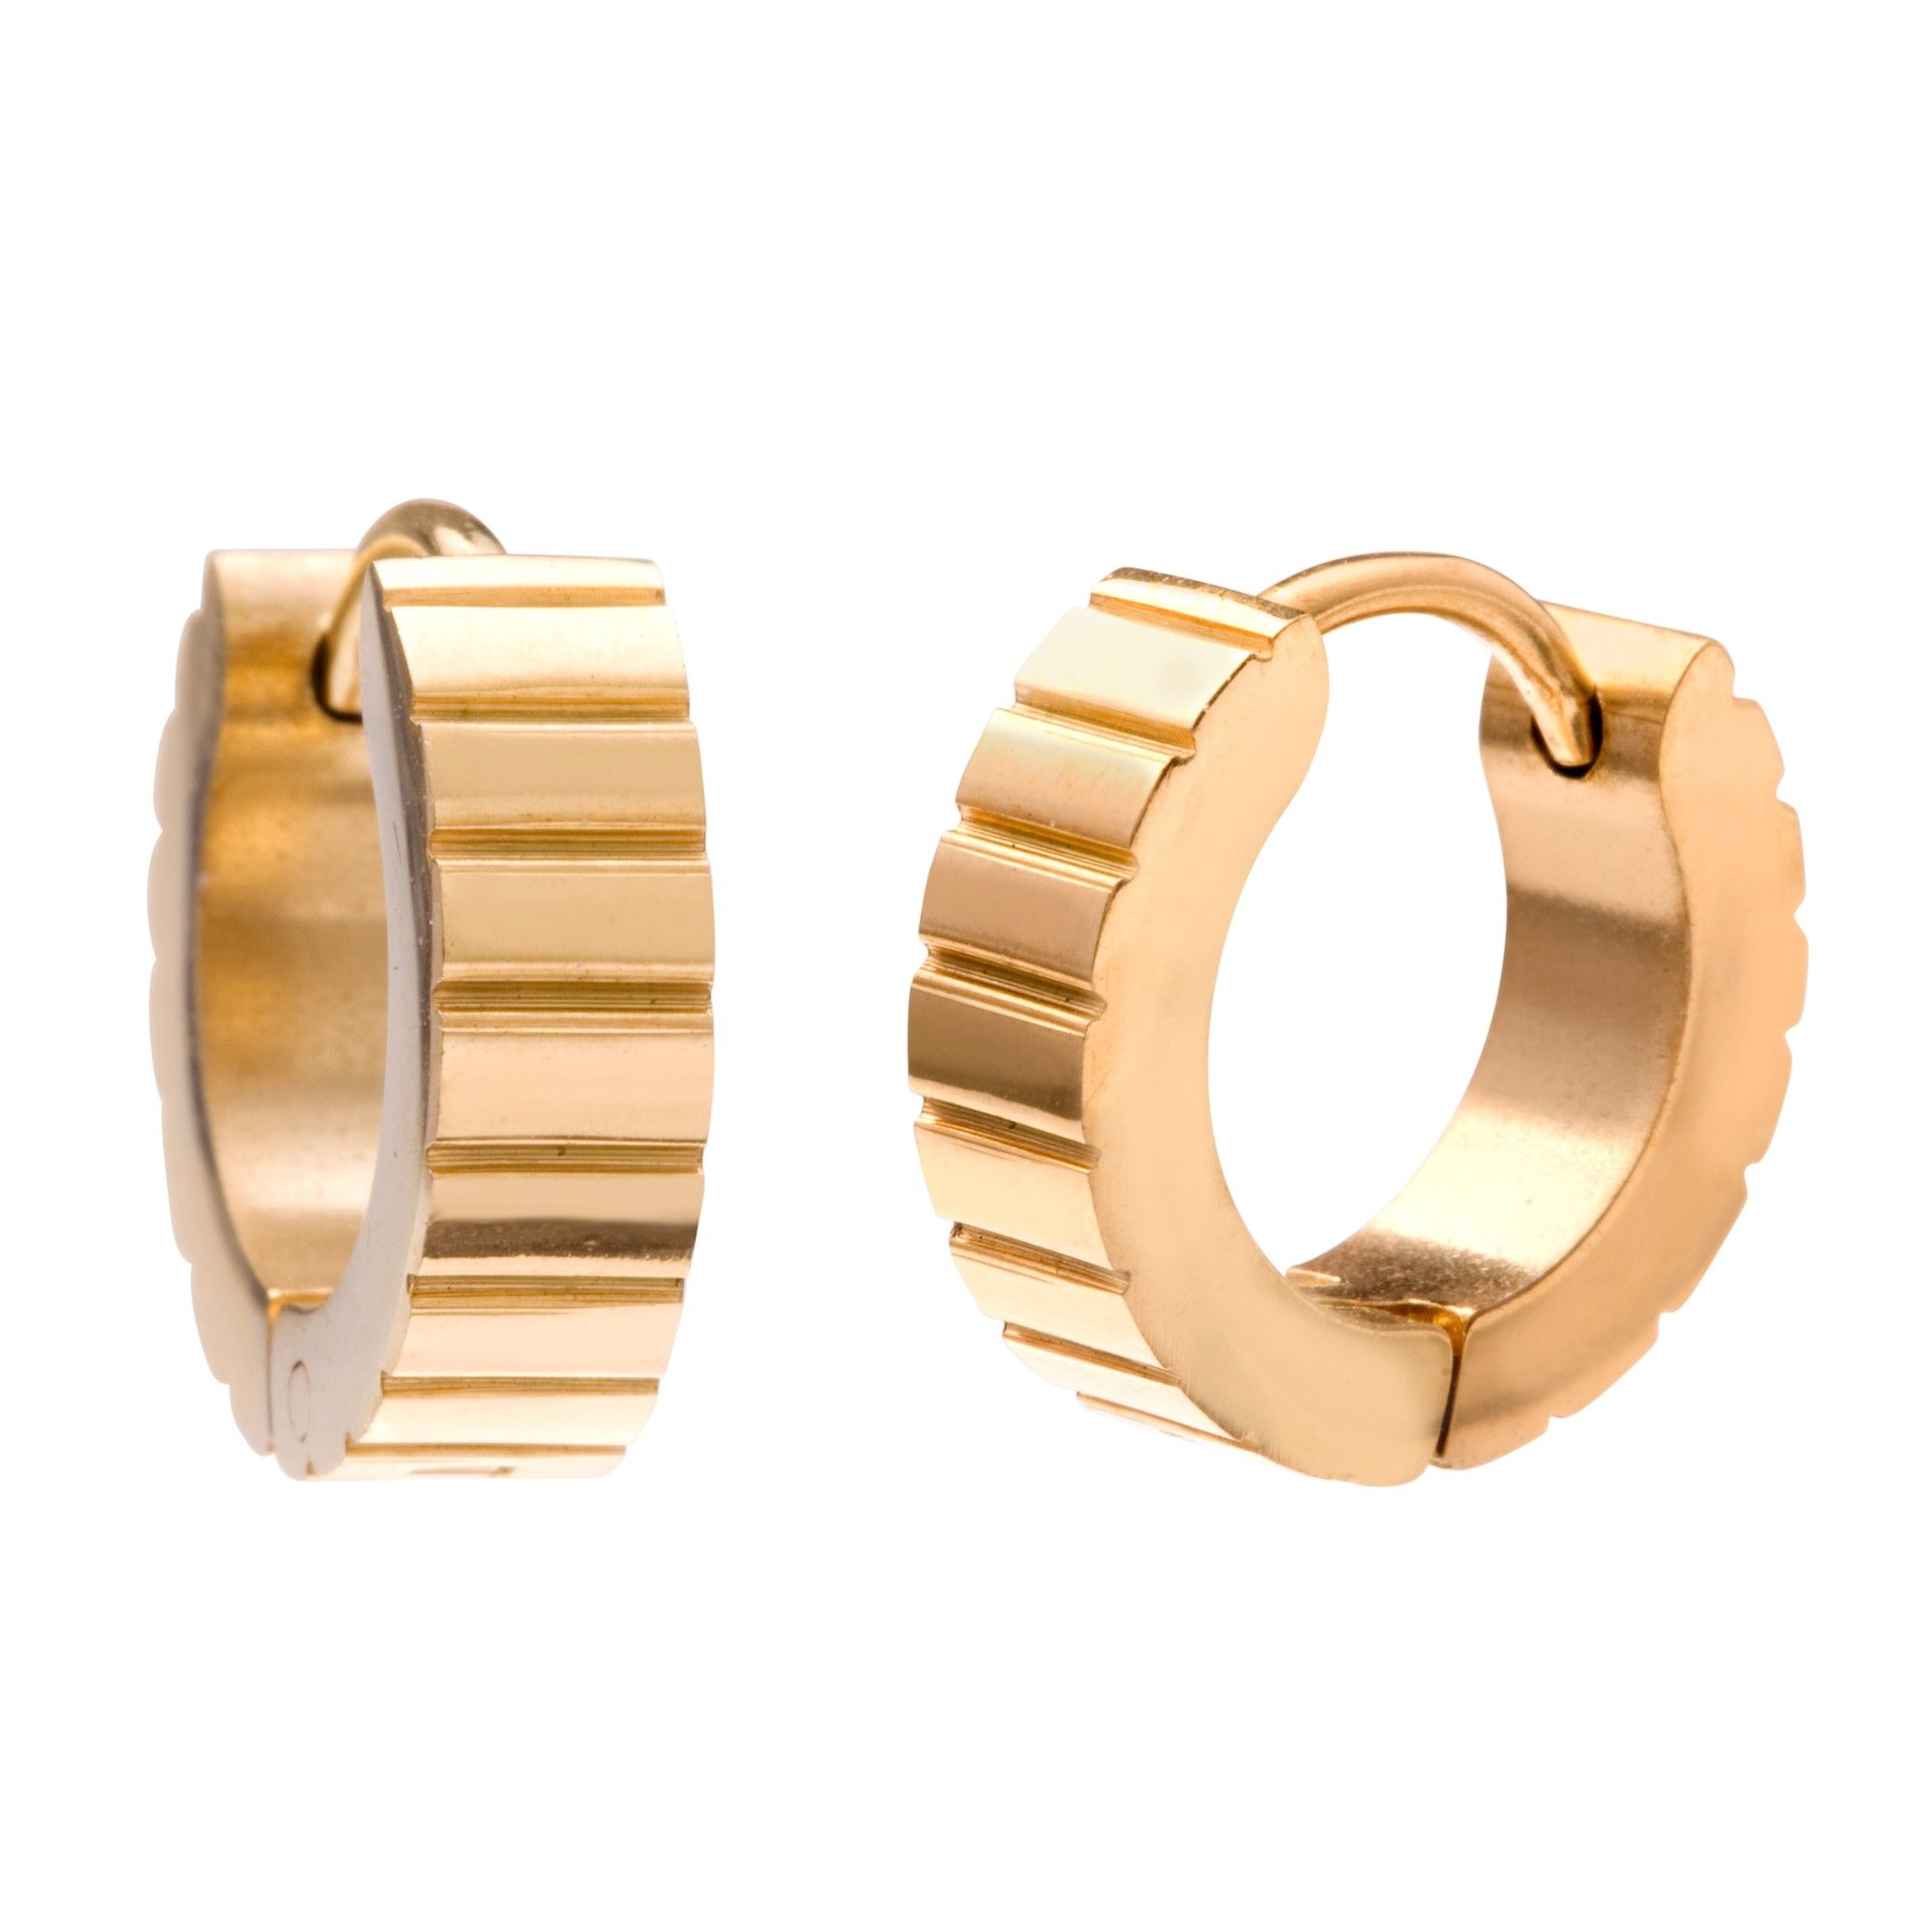 Men's Hinged Hoop Earrings In Gold Finish Stainless Steel